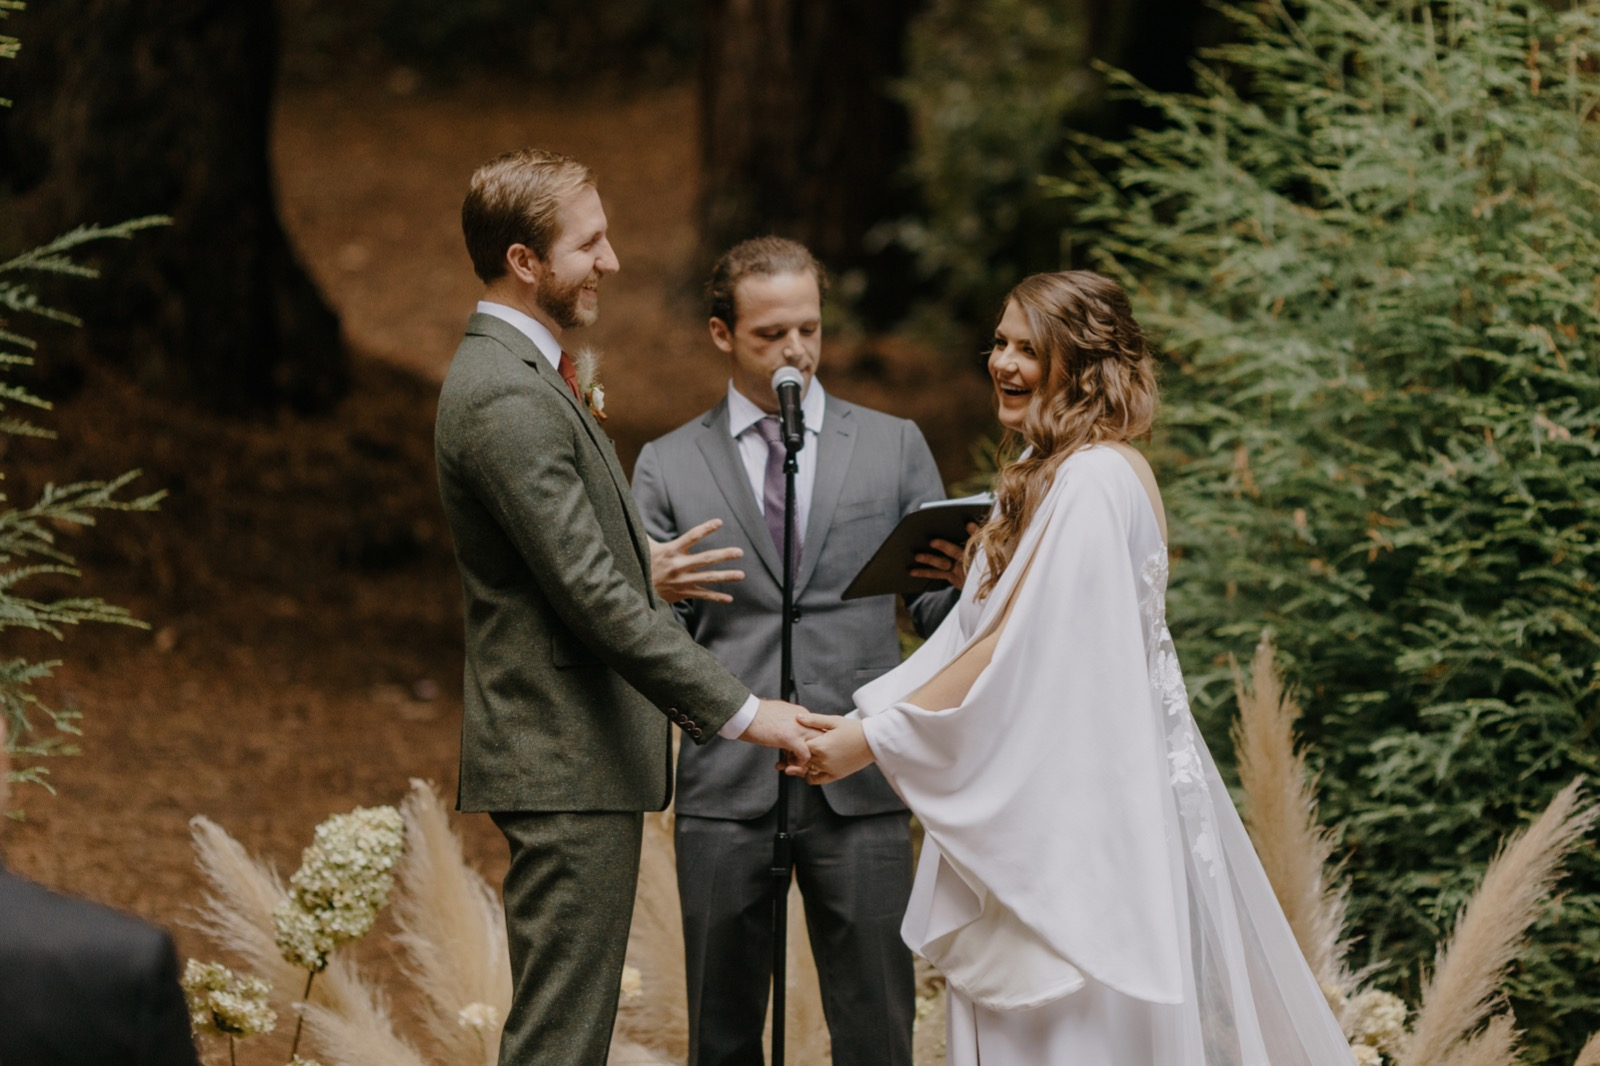 066_E&J 01237_the-waterfall-lodge_forest_wedding_ben-lomond_intimate